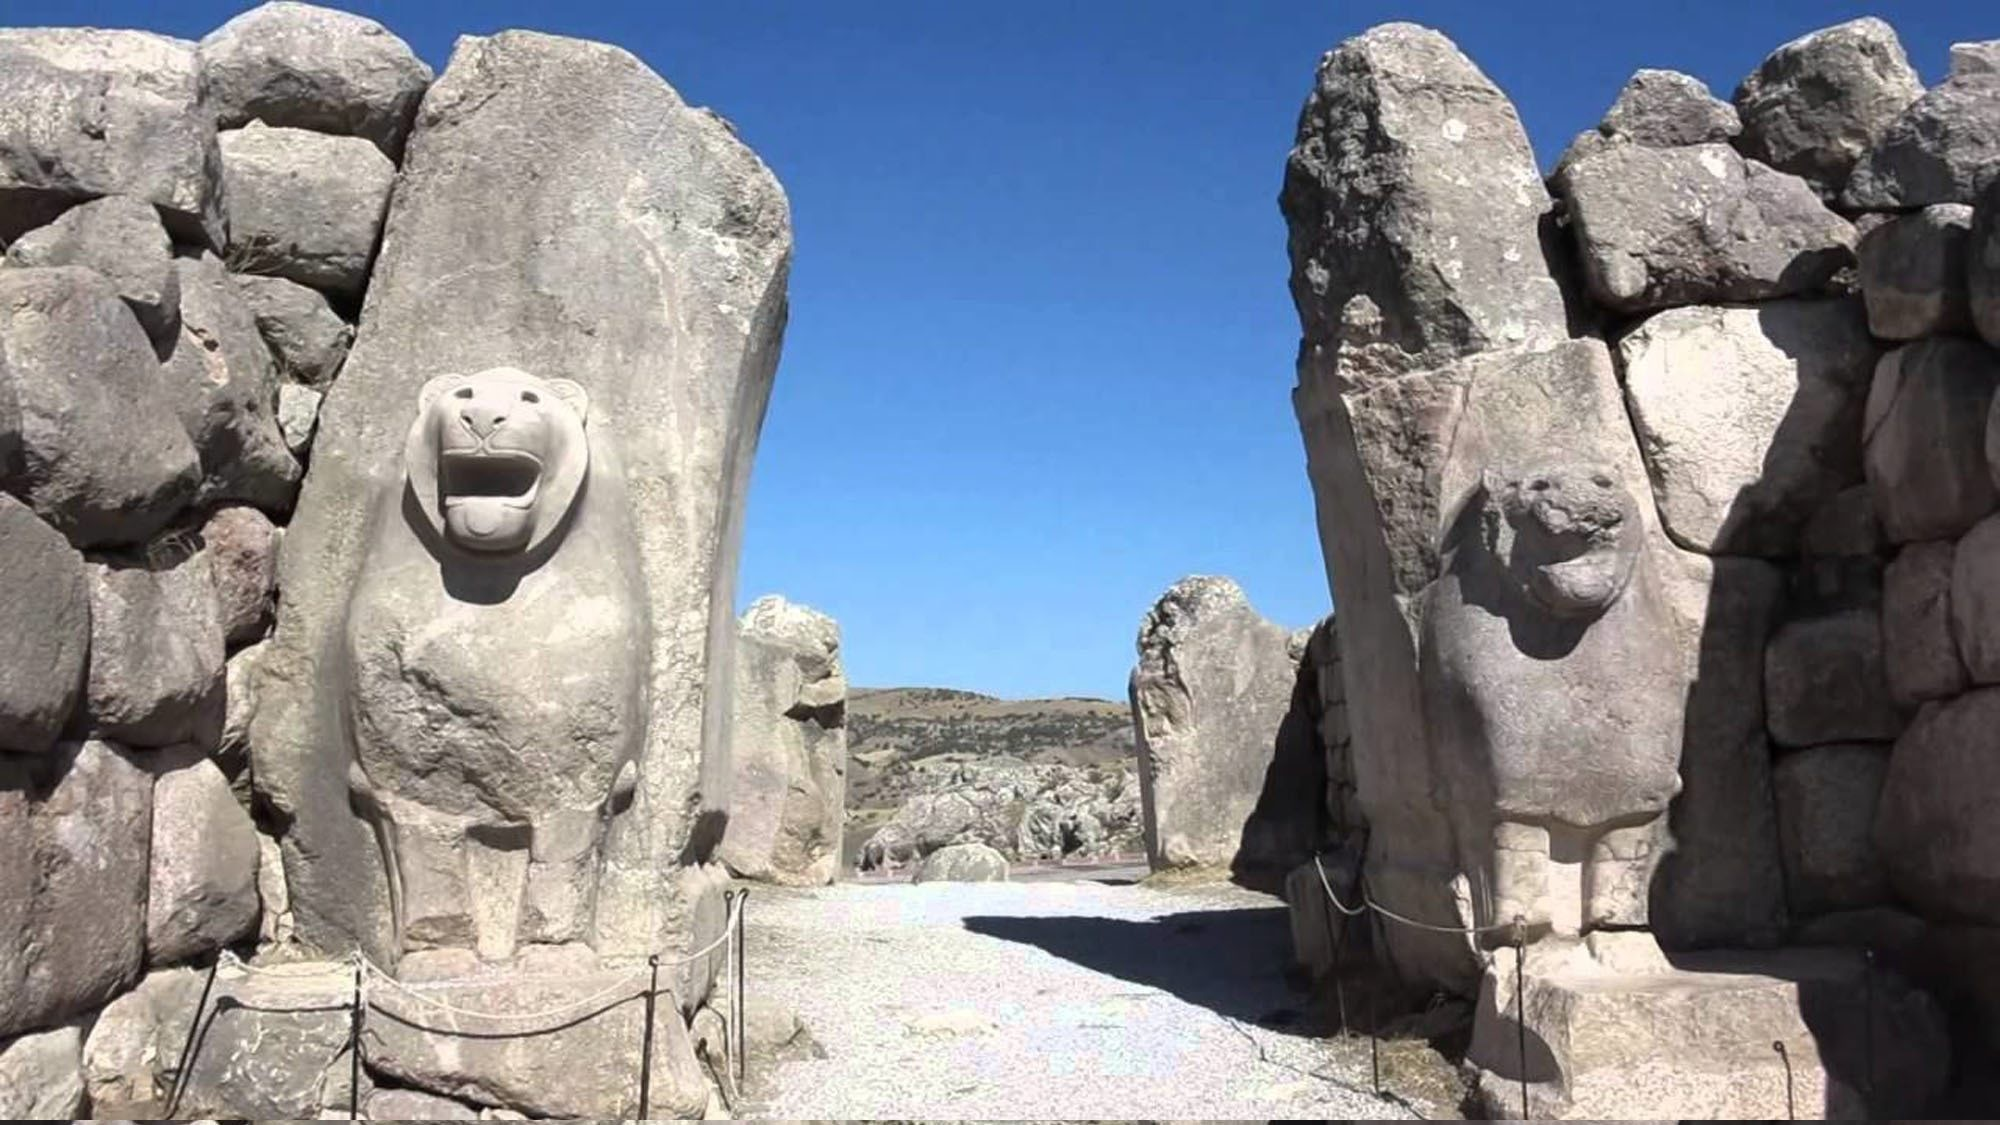 The Lion Gate, named for two matched lions carved from two arched stones, is located in southwestern entrance to Hattusa, built in about 1.340 BC. Lions were of considerable symbolic importance to the Hittite civilization.